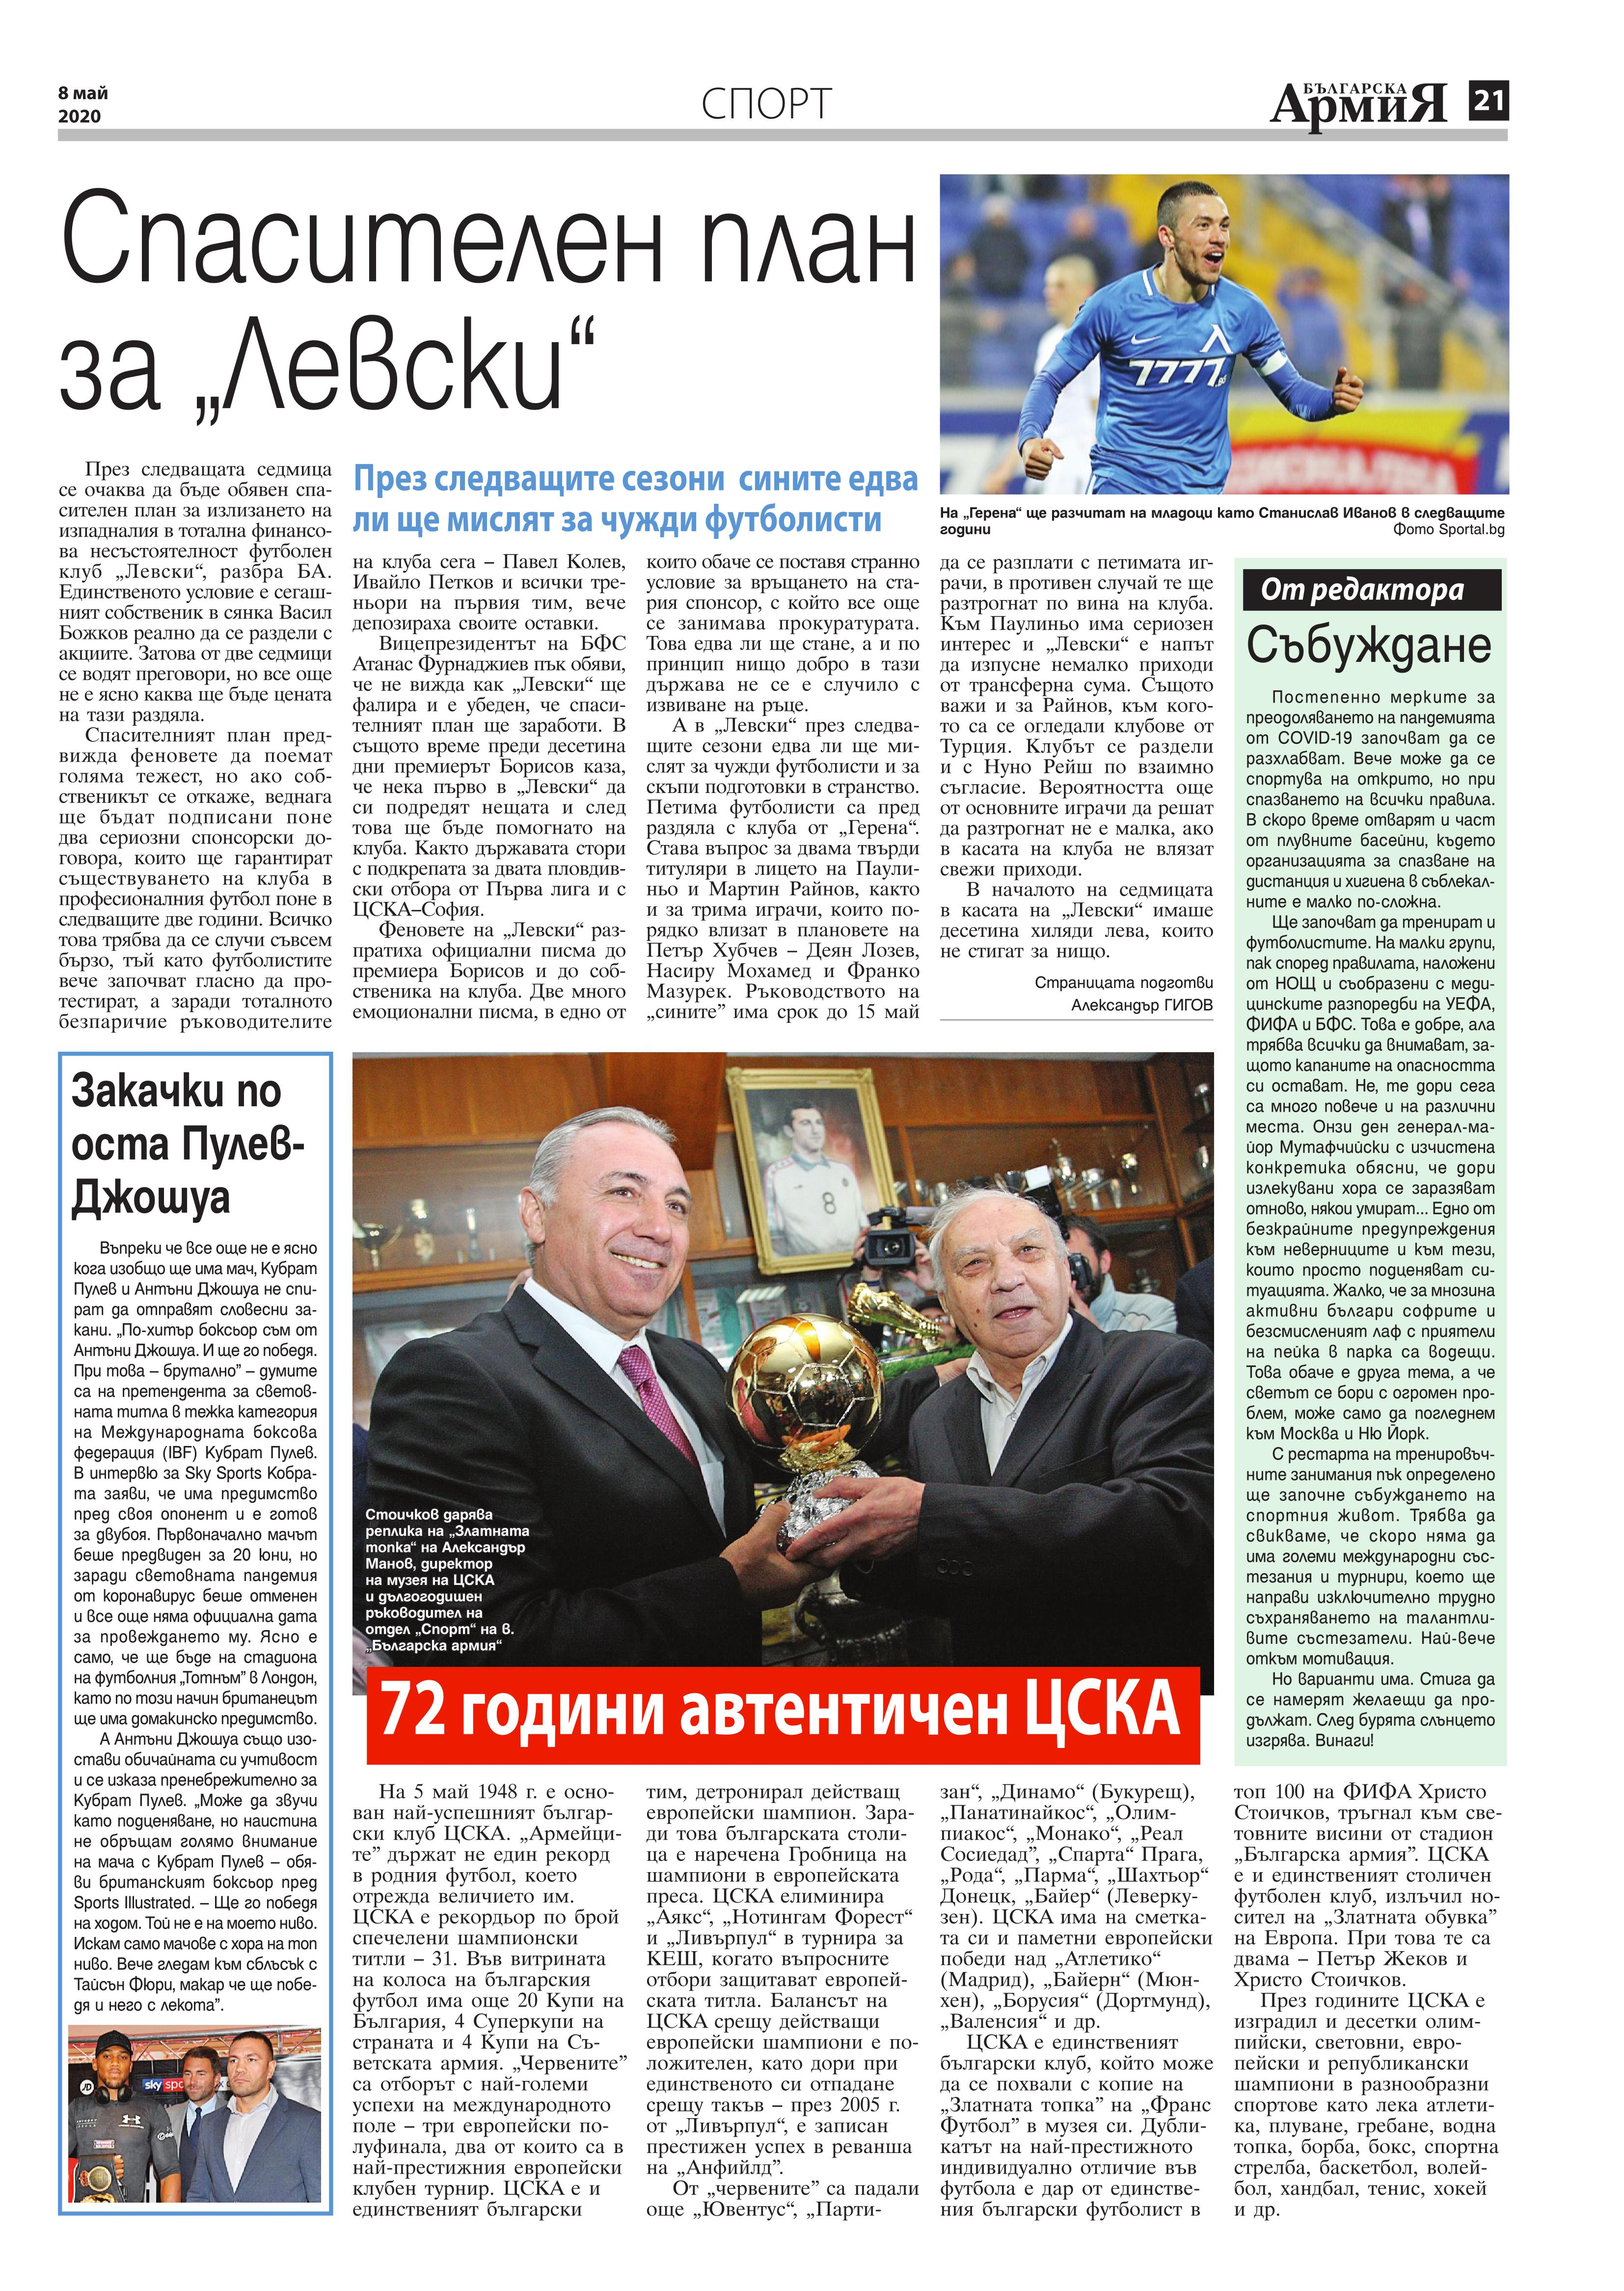 https://www.armymedia.bg/wp-content/uploads/2015/06/21.page1_-138.jpg